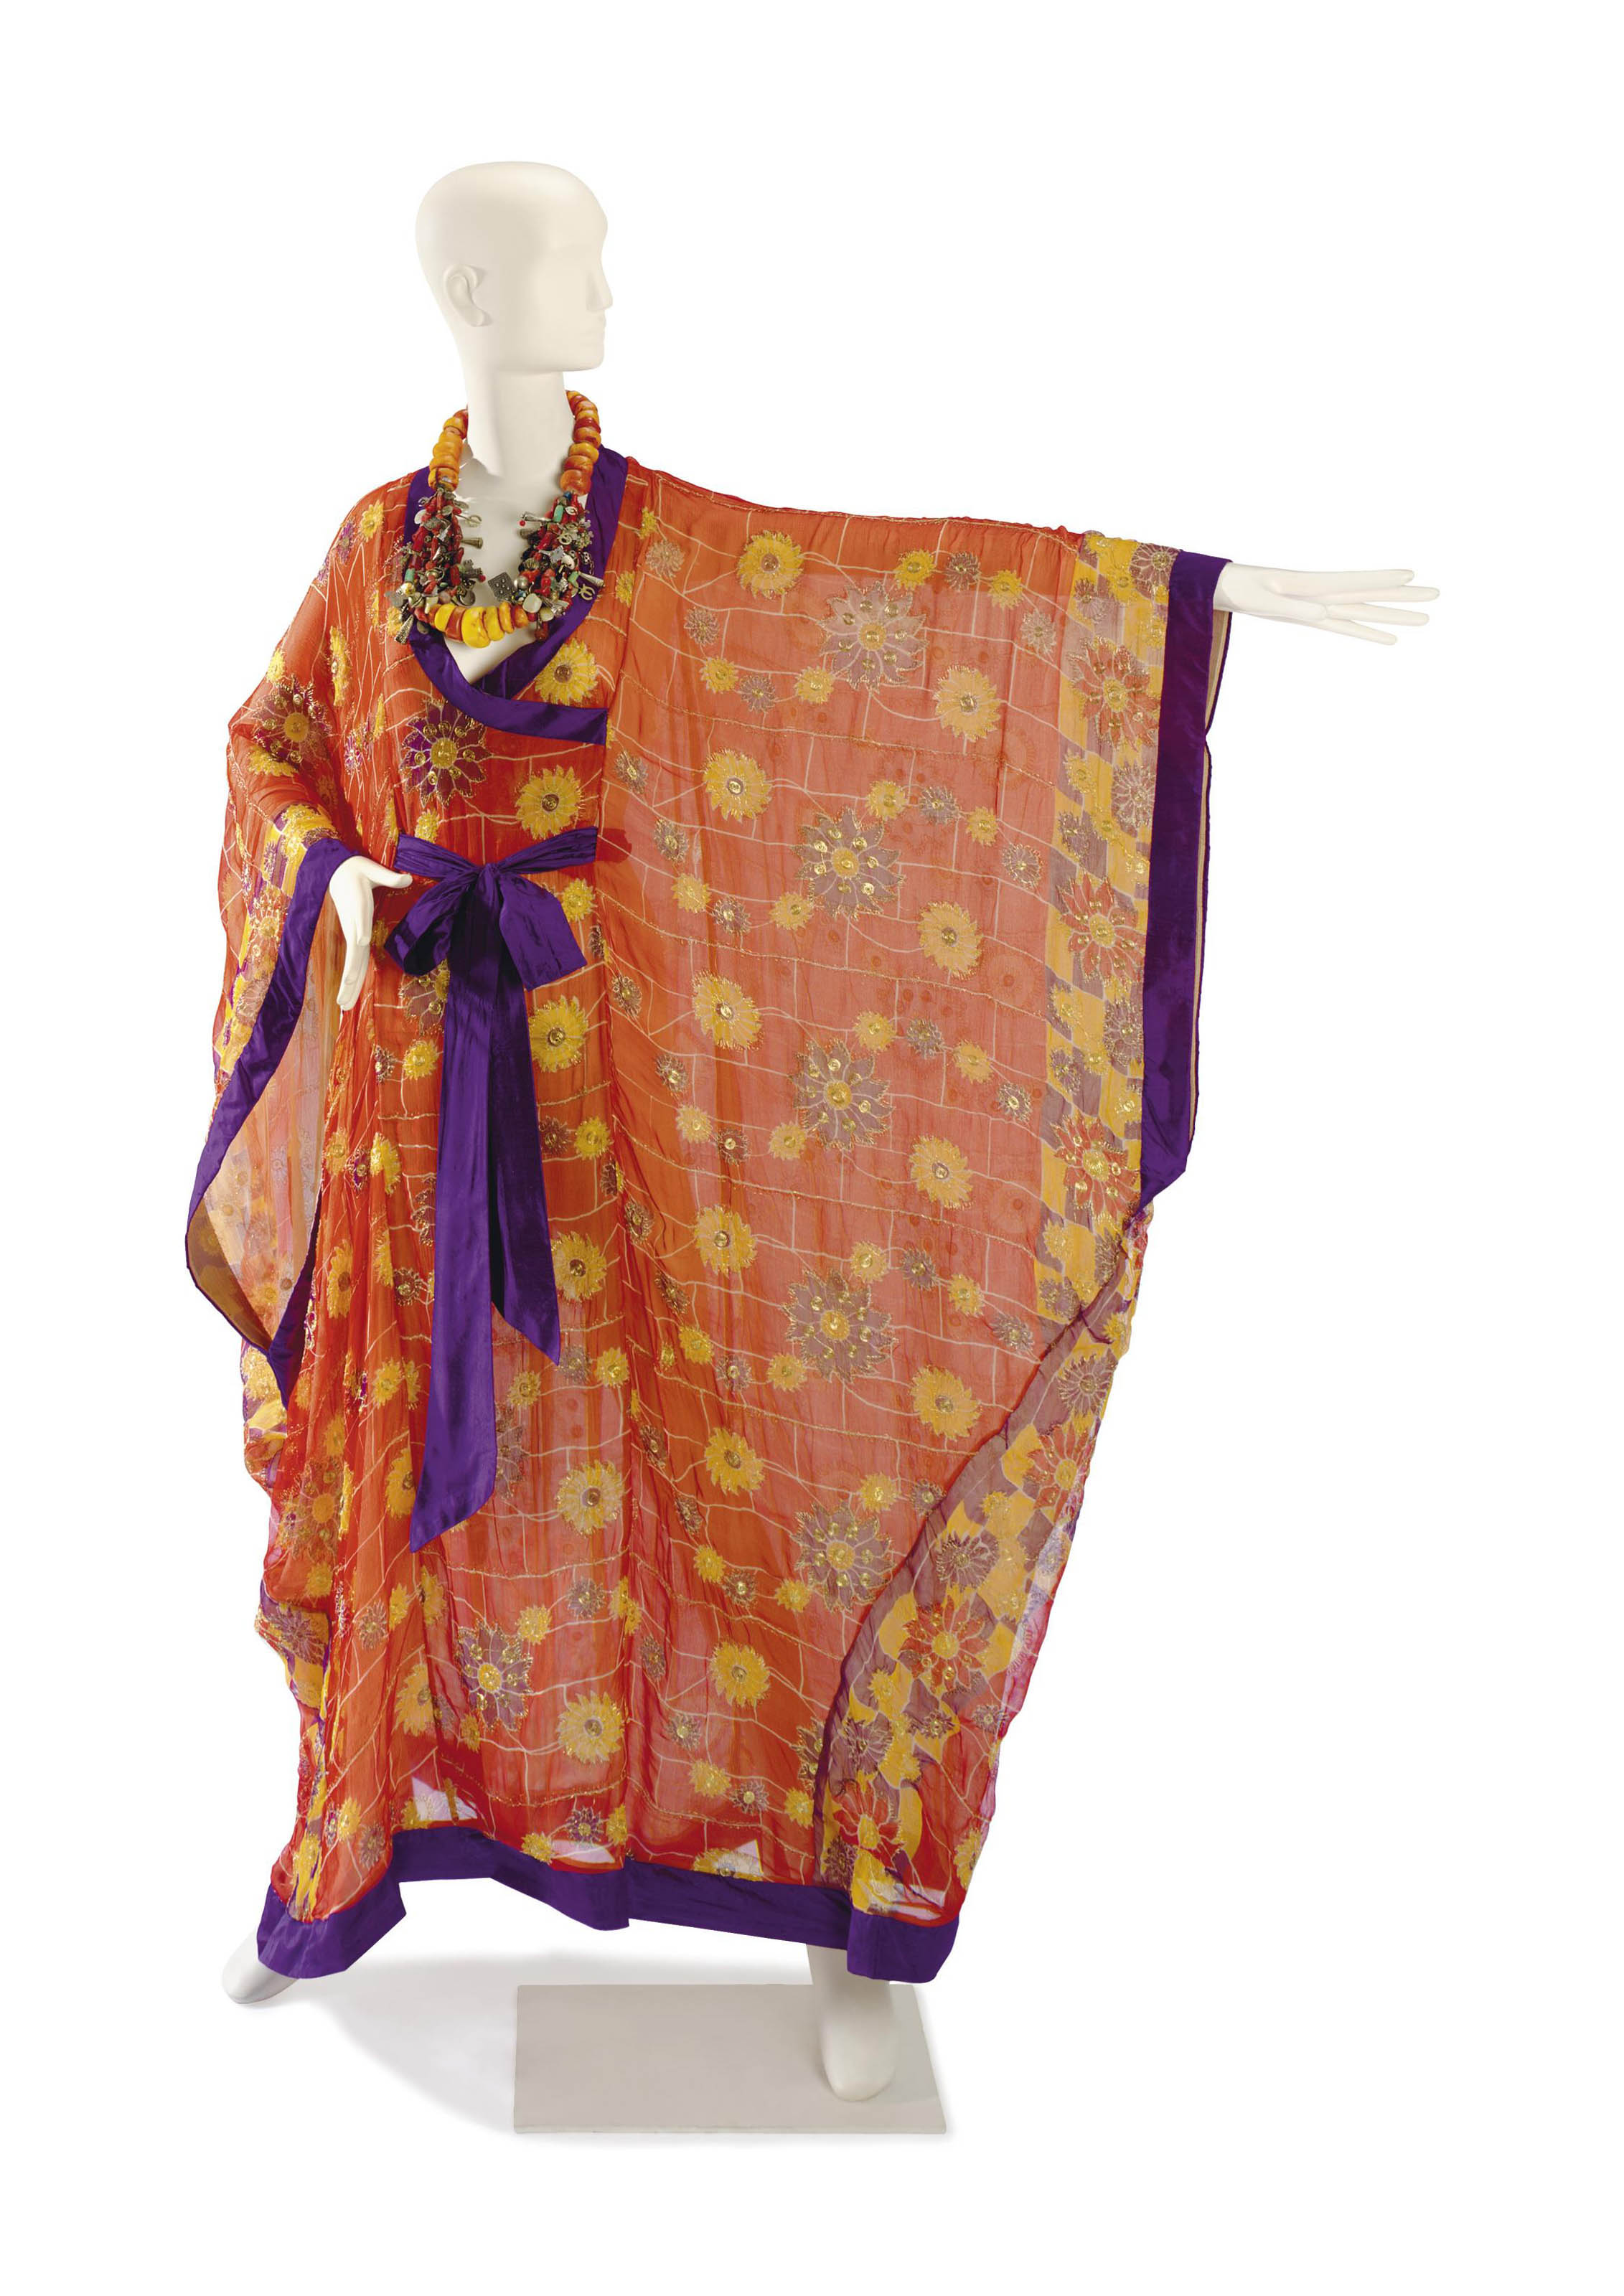 A THEA PORTER ORANGE CHIFFON CAFTAN AND ASSOCIATED TRADITIONAL CHARM NECKLACE